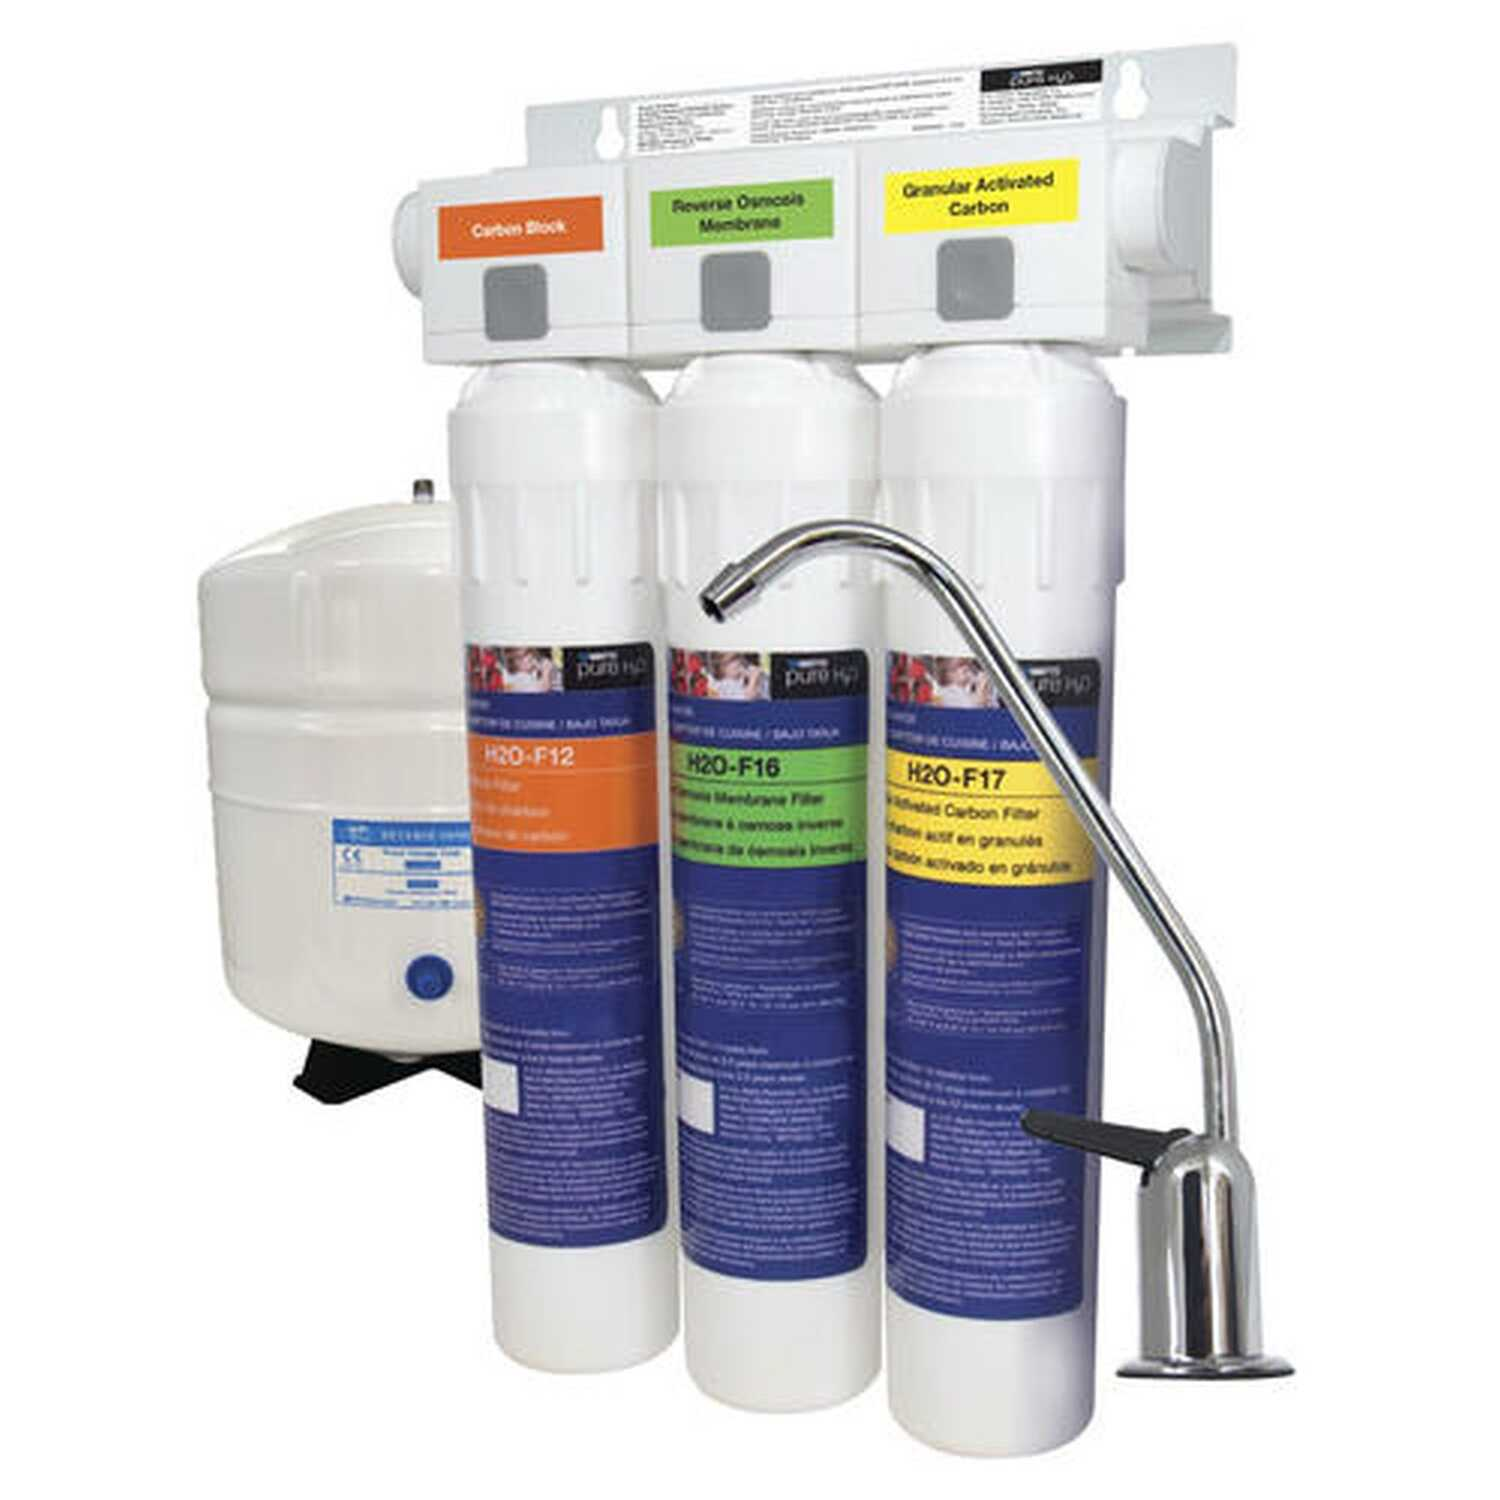 Watts  Stage 3  Reverse Osmosis Water Filter System  For Under Sink 3 gal.